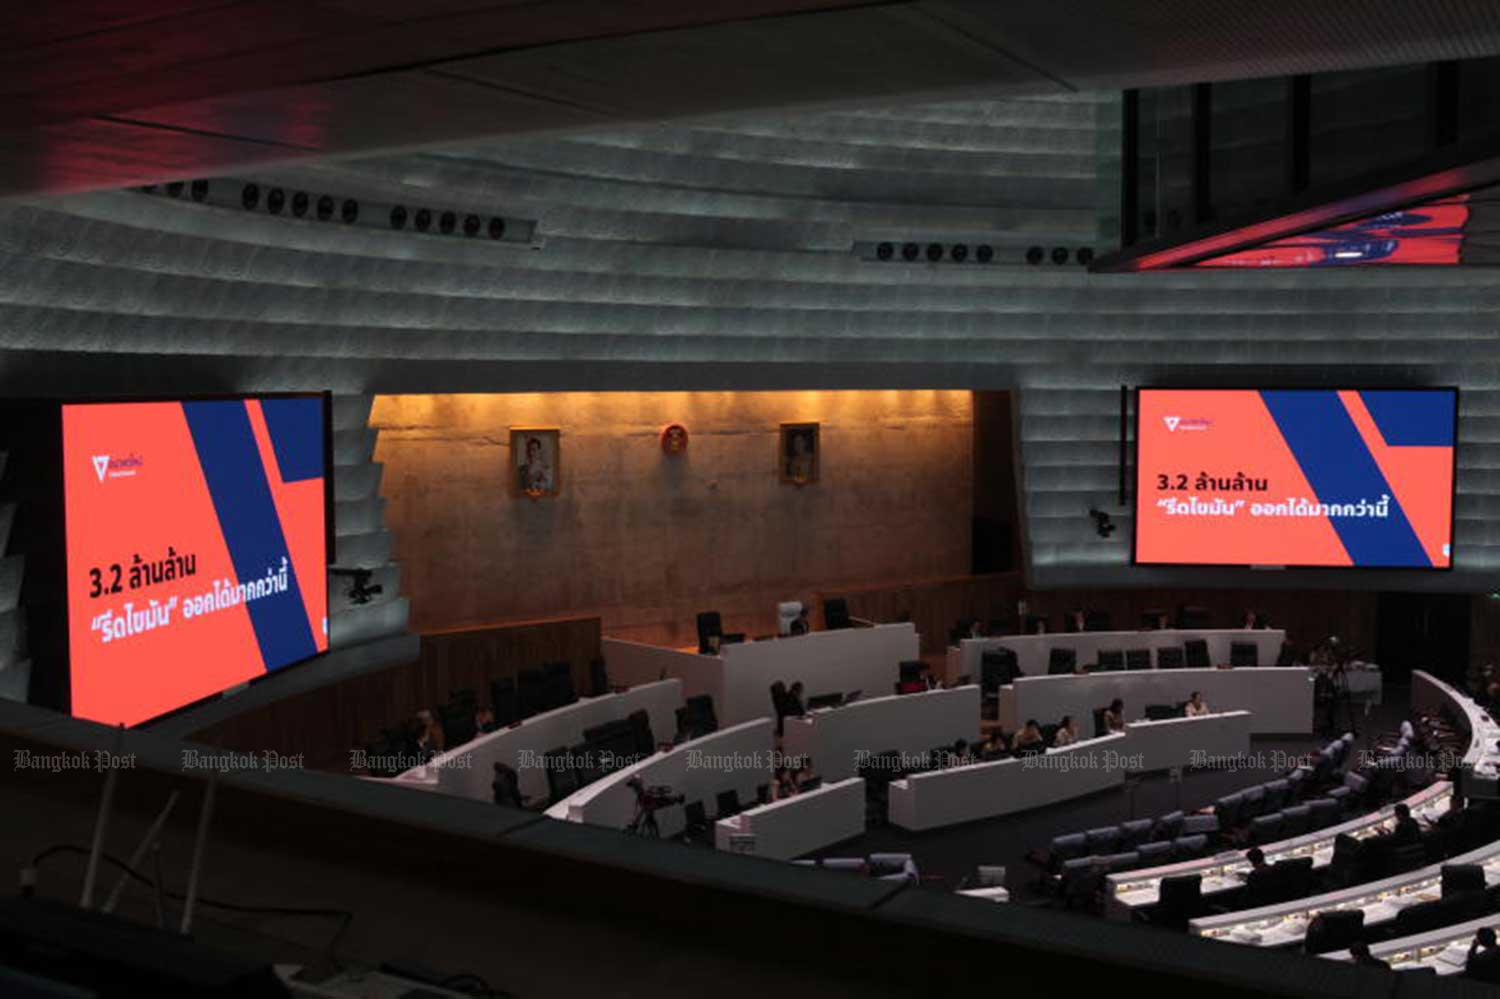 The 3.2-trillion-baht budget bill for fiscal 2020 was debated in the parliament before it sailed through its third reading, with most opposition MPs abstaining. (File photo)